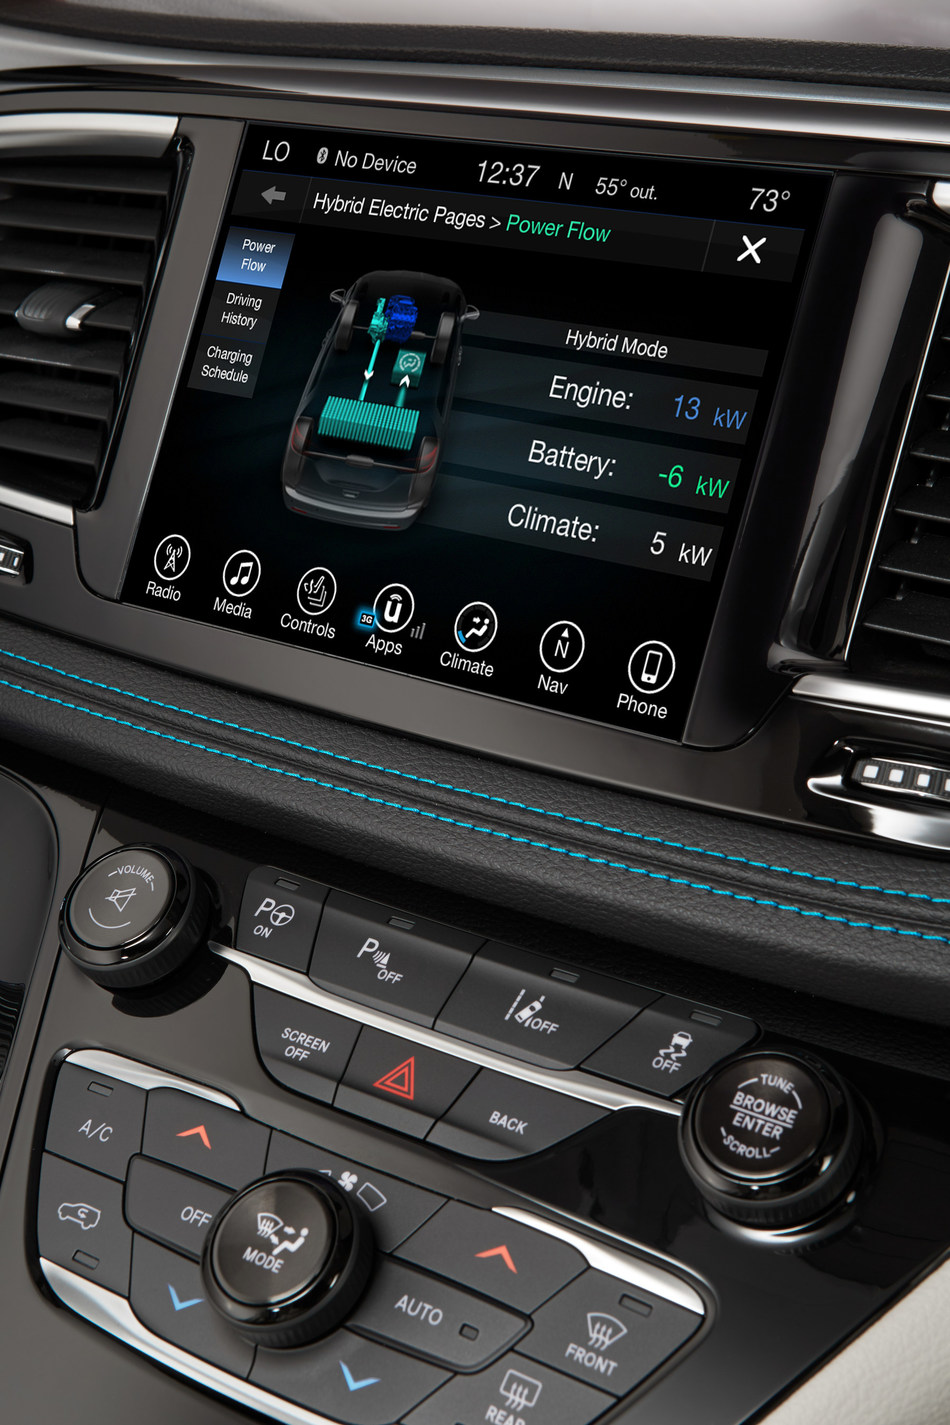 The all-new 2017 Chrysler Pacifica Hybrid offers technology features to help drivers maximize efficiency, including the Uconnect 8.4 system with the new Hybrid Electric Pages. The Hybrid Electric Pages offer several different screens for drivers, including a power flow screen, which provides a dynamic illustration showing how/where power is flowing within the vehicle. Other screens include a driving history screen, which displays a chart showing the distance driven by day in electric mode and hybrid mode, and a charge scheduling screen, which allows owners to schedule the Pacifica Hybrid's charging times to make the most of off-peak rates.